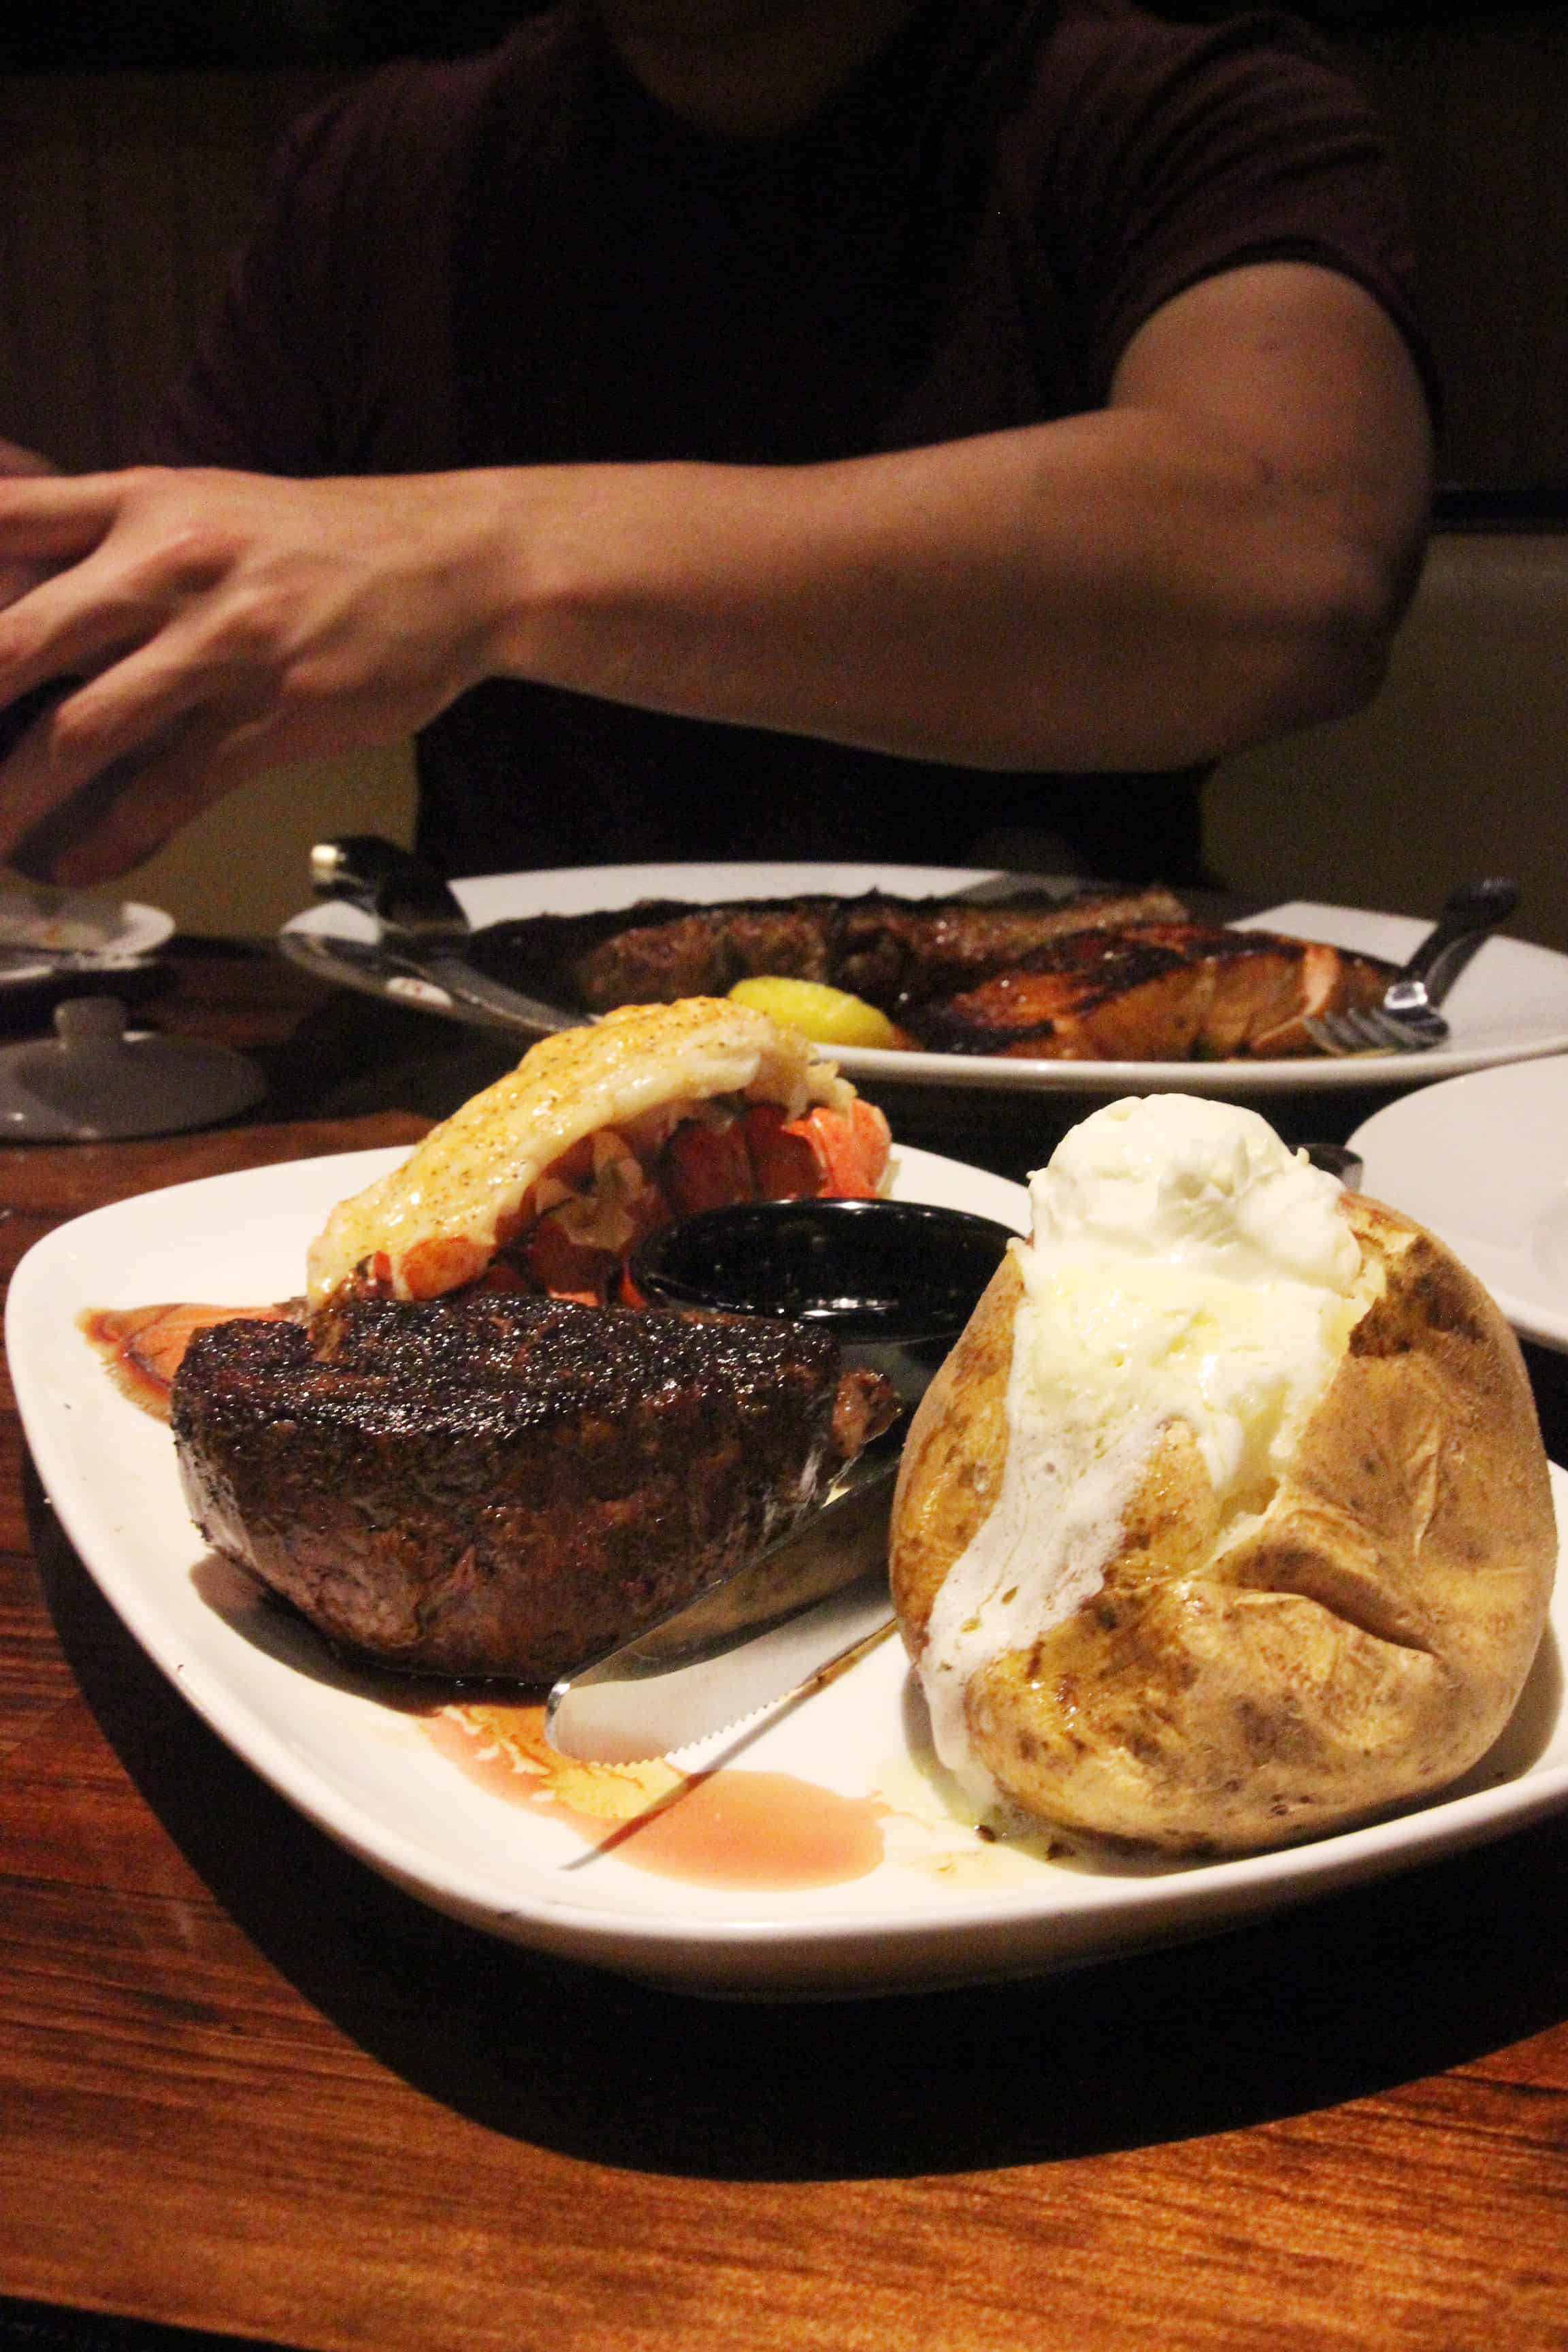 Longhorn Steakhouse Review A Taste Of Koko Austin S Make Your Own Beautiful  HD Wallpapers, Images Over 1000+ [ralydesign.ml]